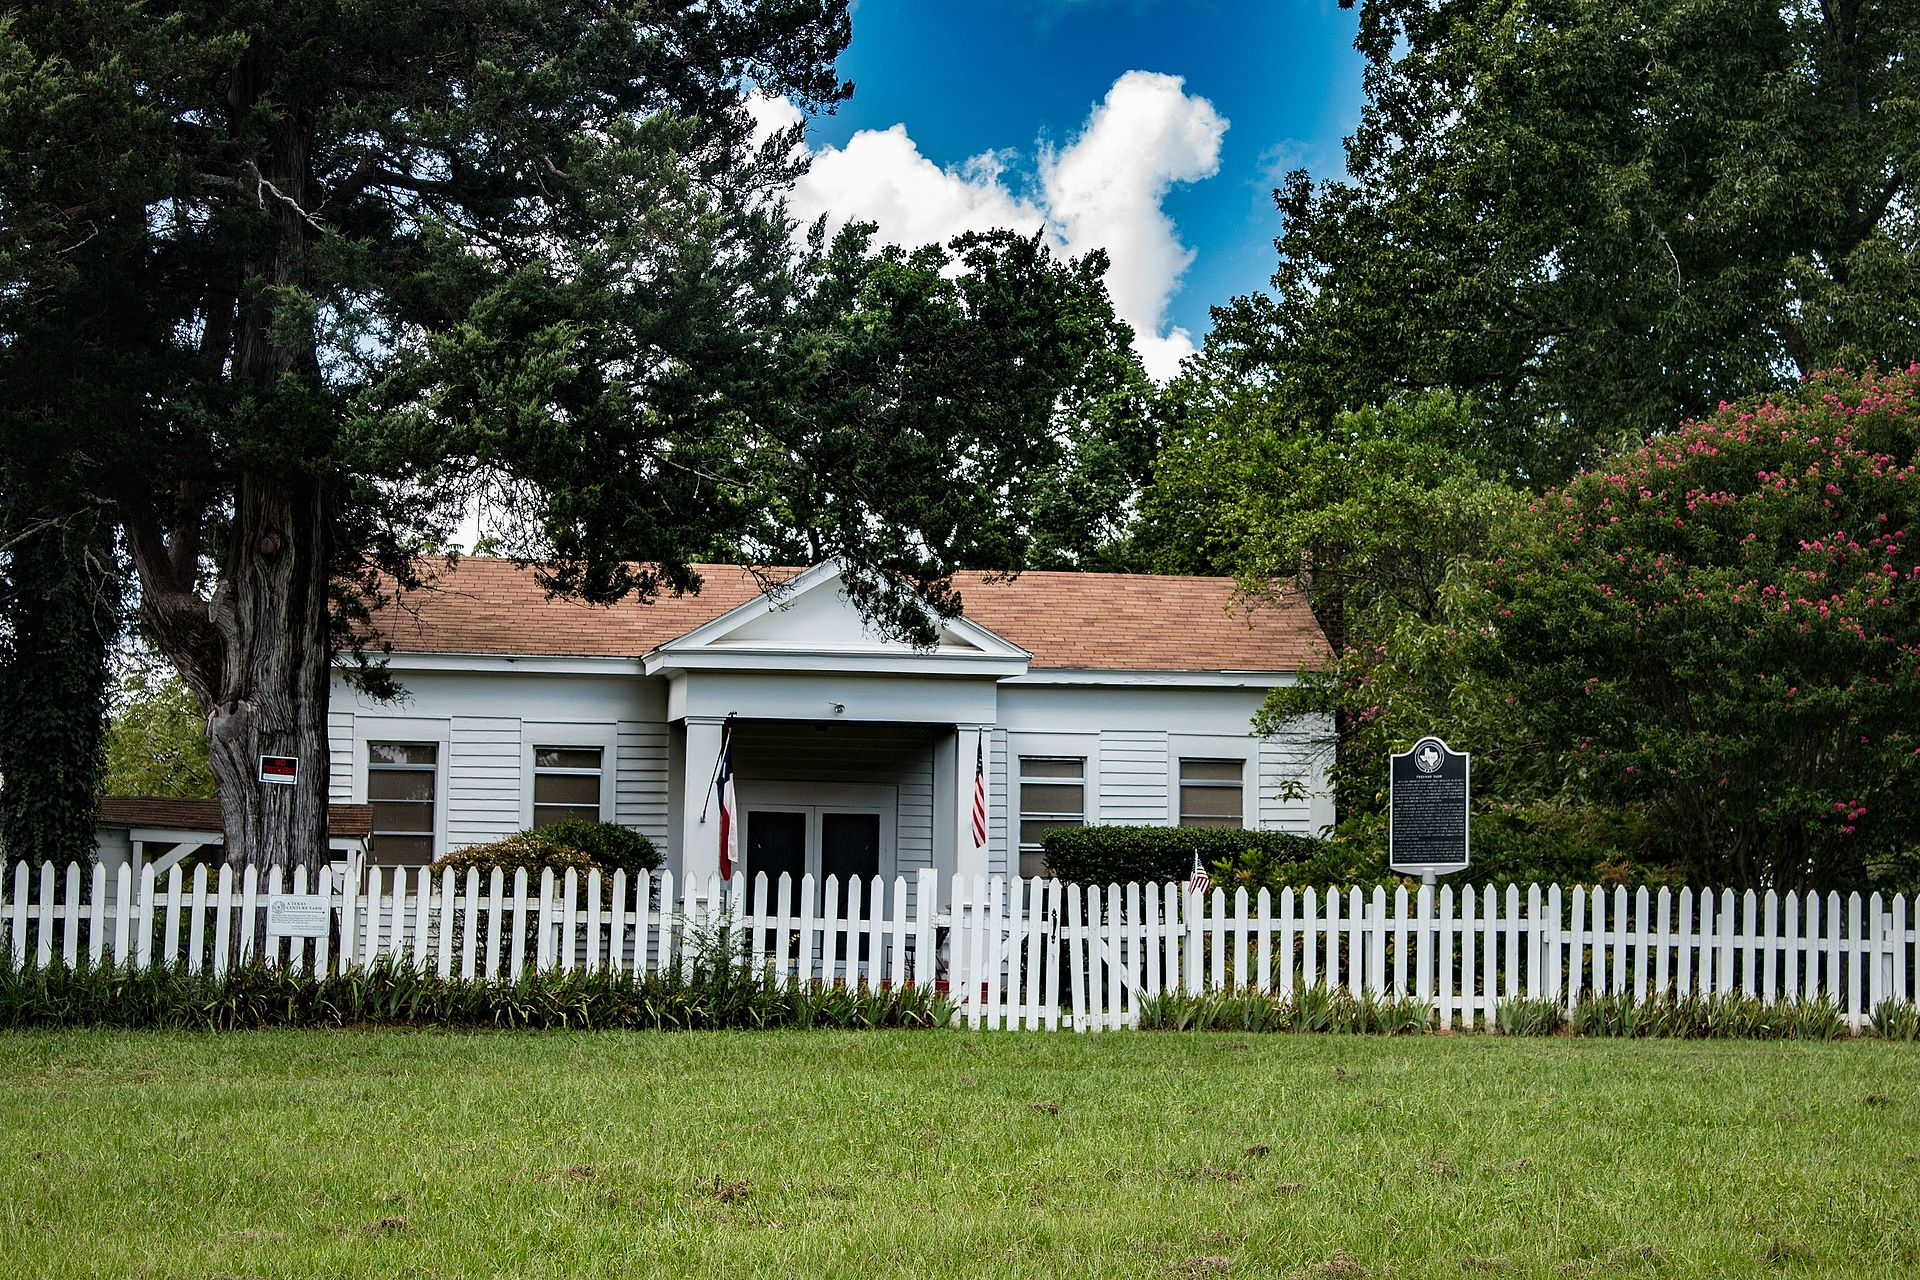 The farmhouse was built in 1854 in the Greek Revival style.